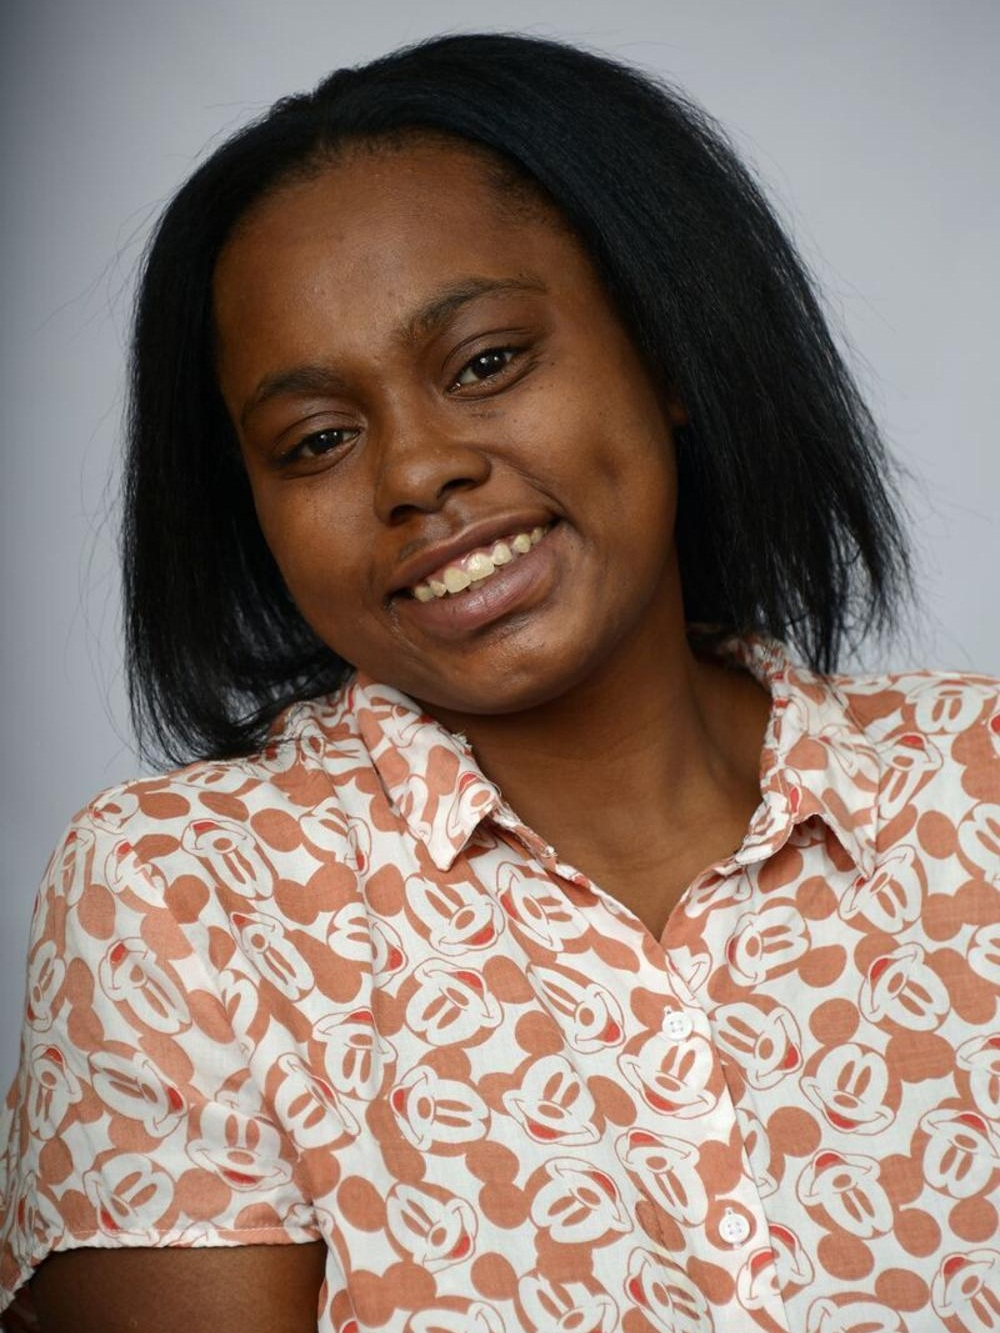 Quanesha Gibbs - I became a Justice Advisor because at one point I was in the hands of the juvenile justice system: I know first-hand what could be done better, and I believe my knowledge can help change the system for future generations.My role as a Justice Advisor is to be part of positive changes that can improve how young people live today.